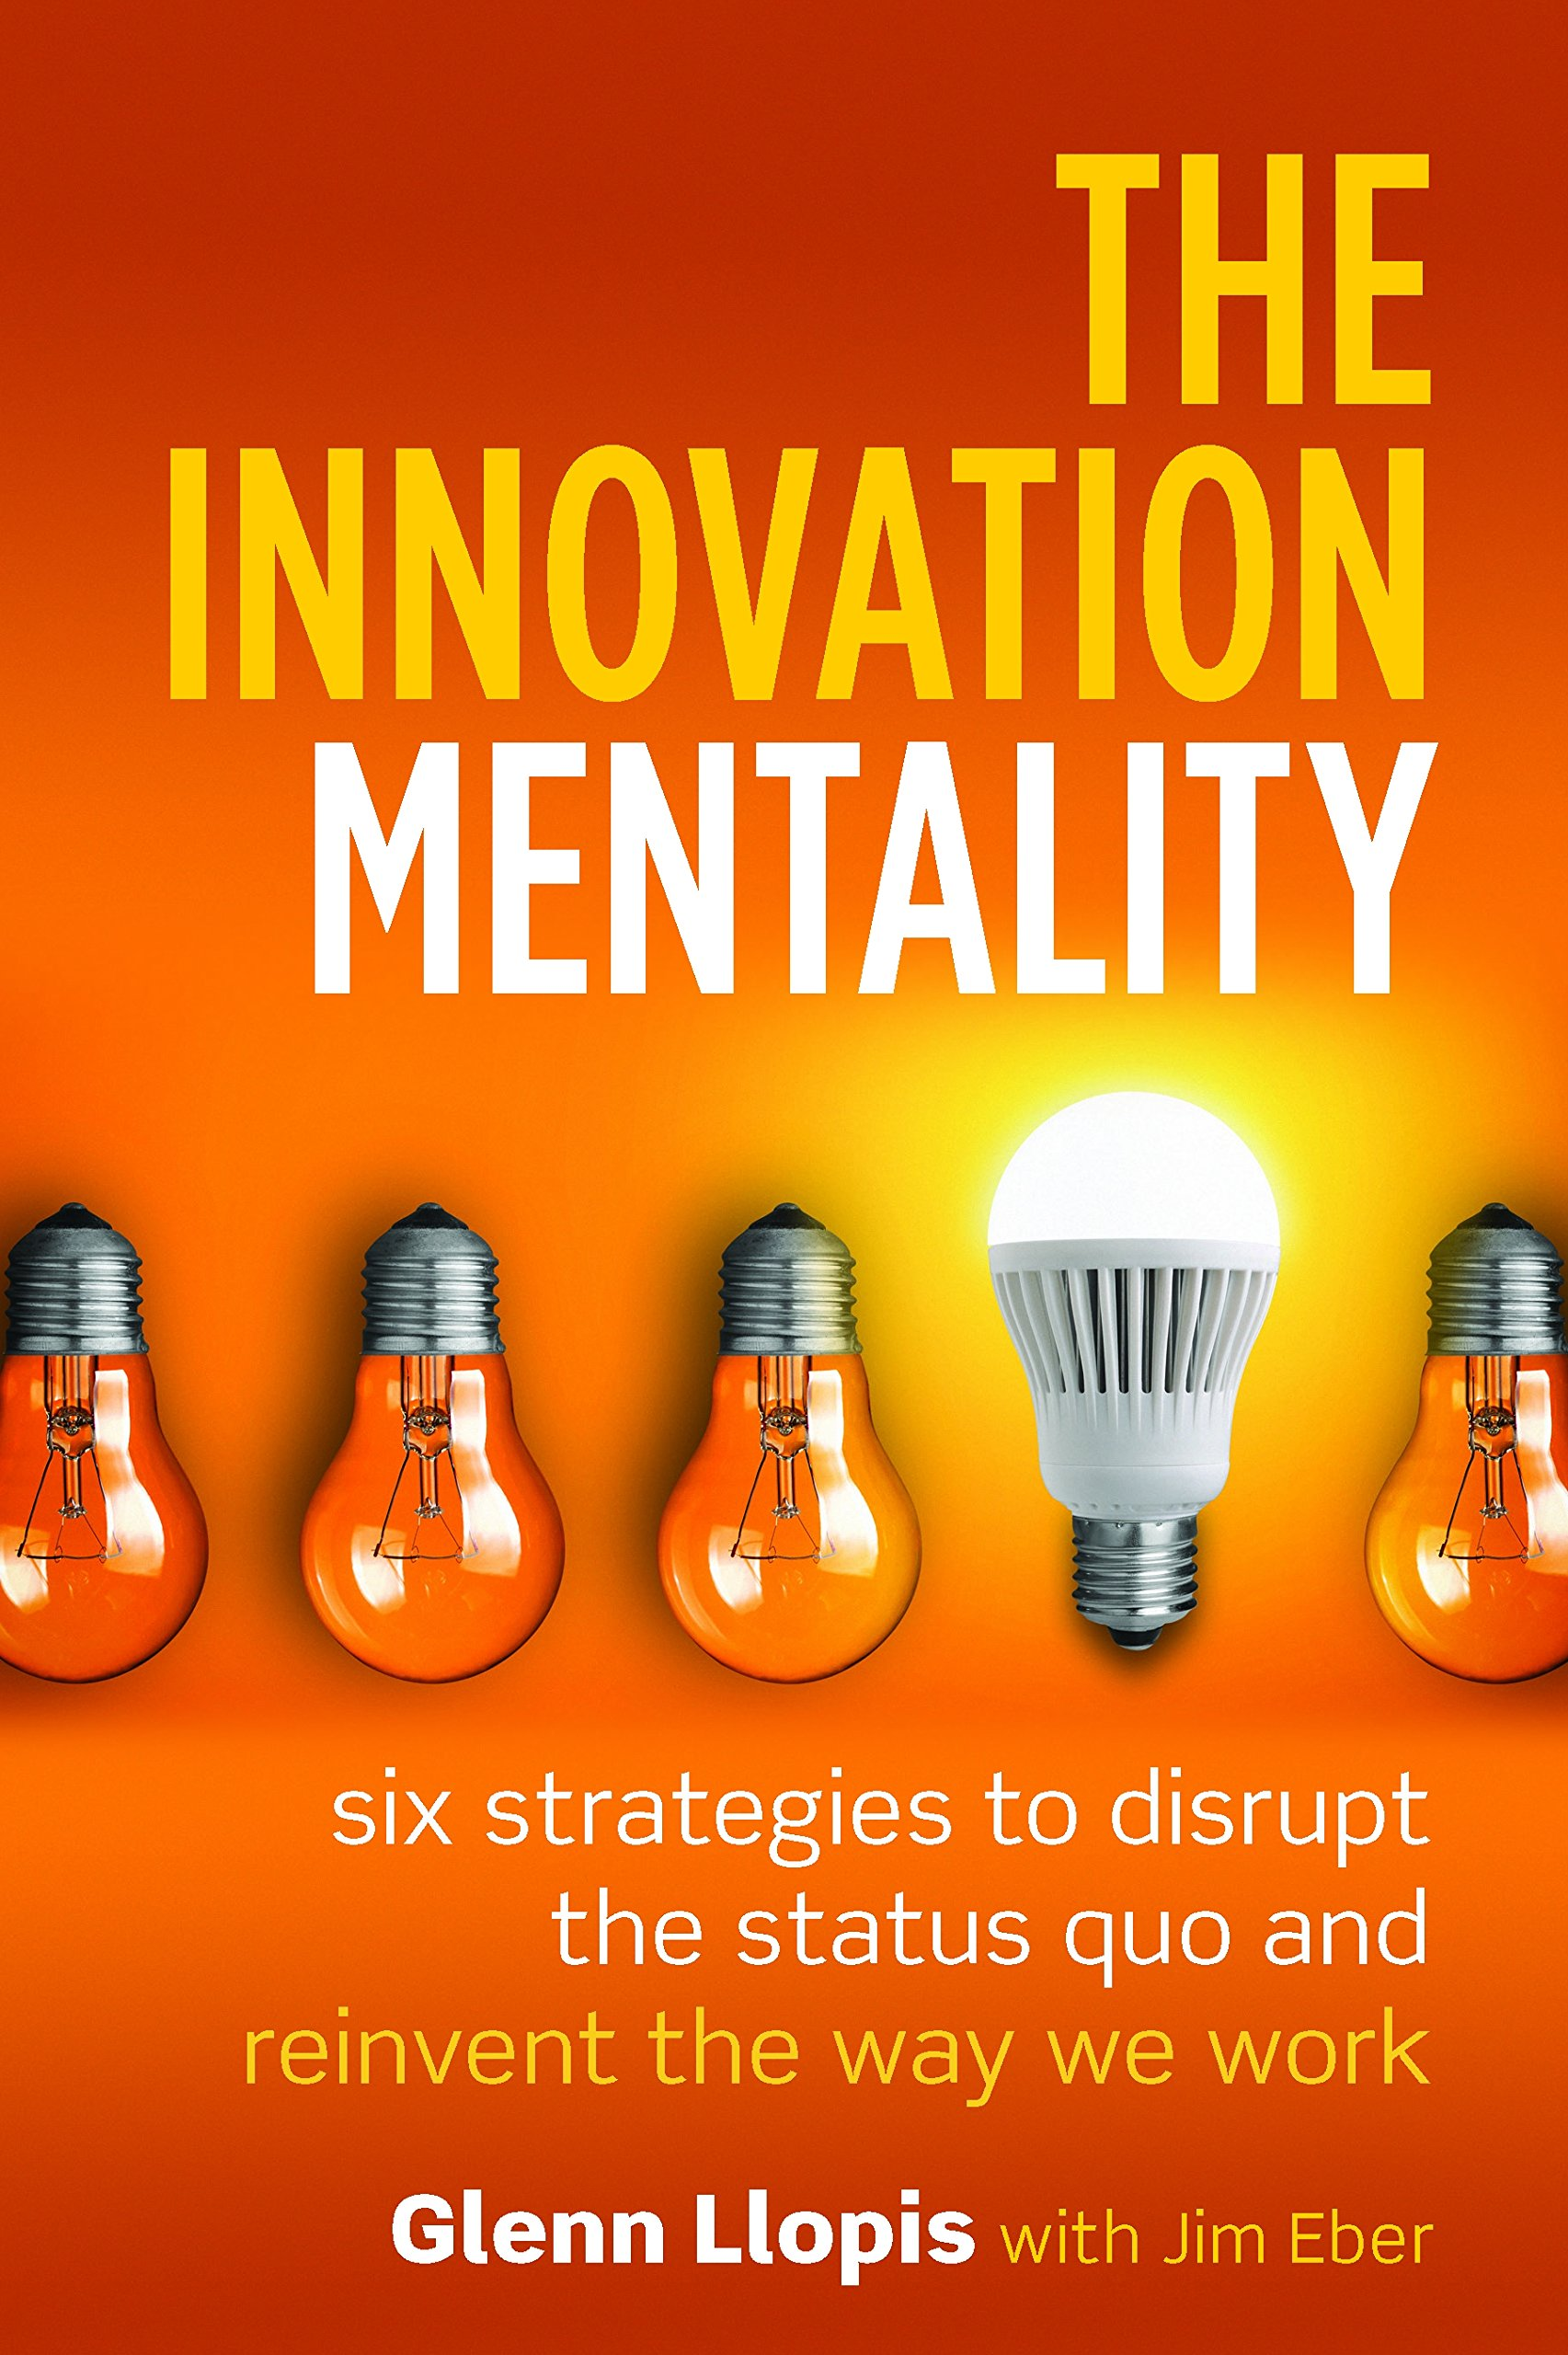 Download The Innovation Mentality: Six Strategies to Disrupt the Status Quo and Reinvent the Way We Work ebook